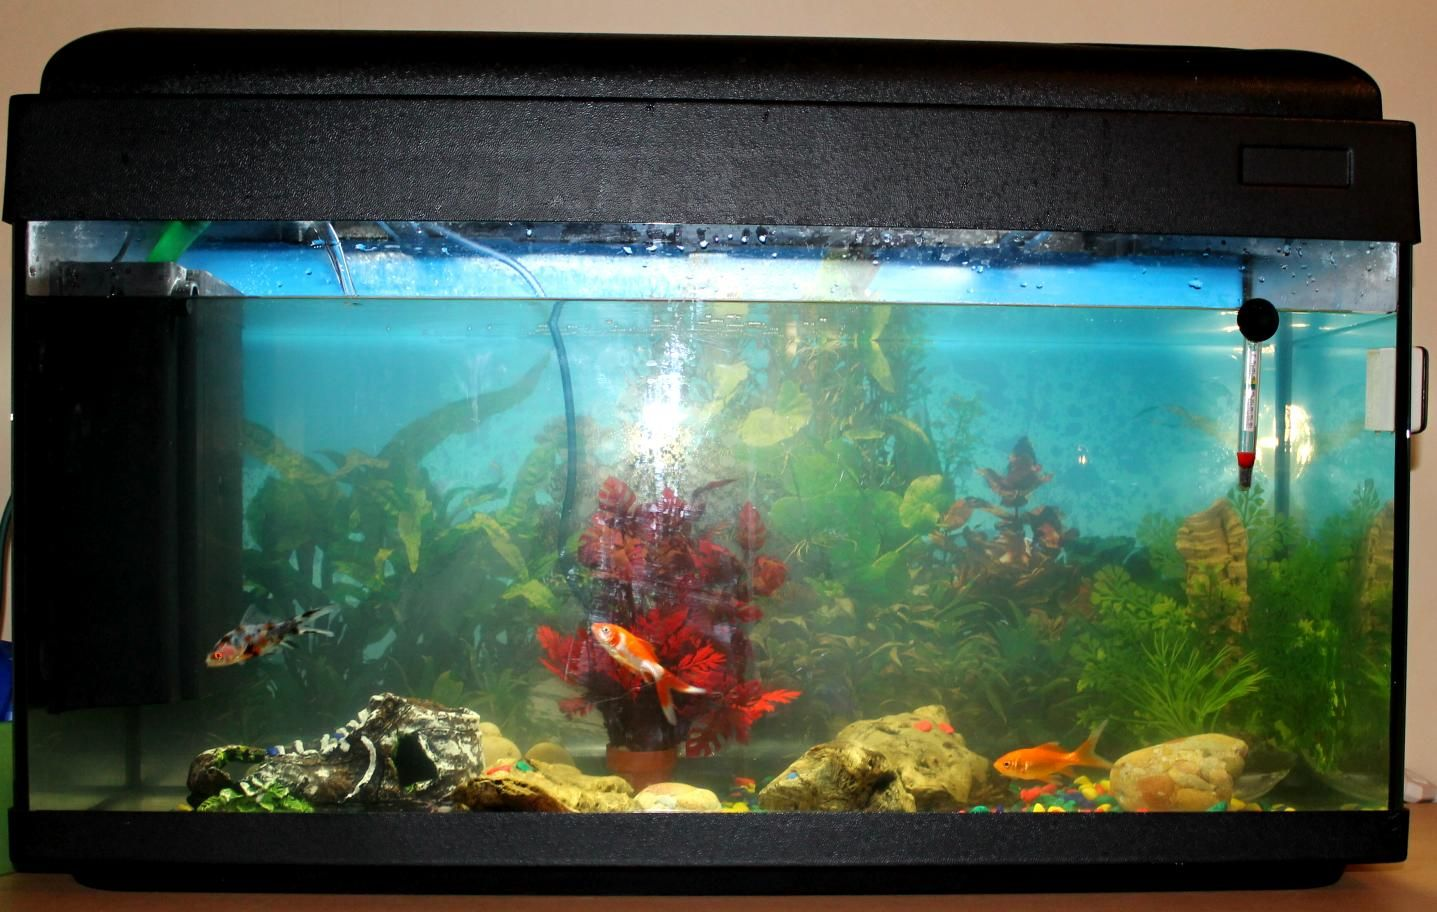 aquarium avec poisson. Black Bedroom Furniture Sets. Home Design Ideas